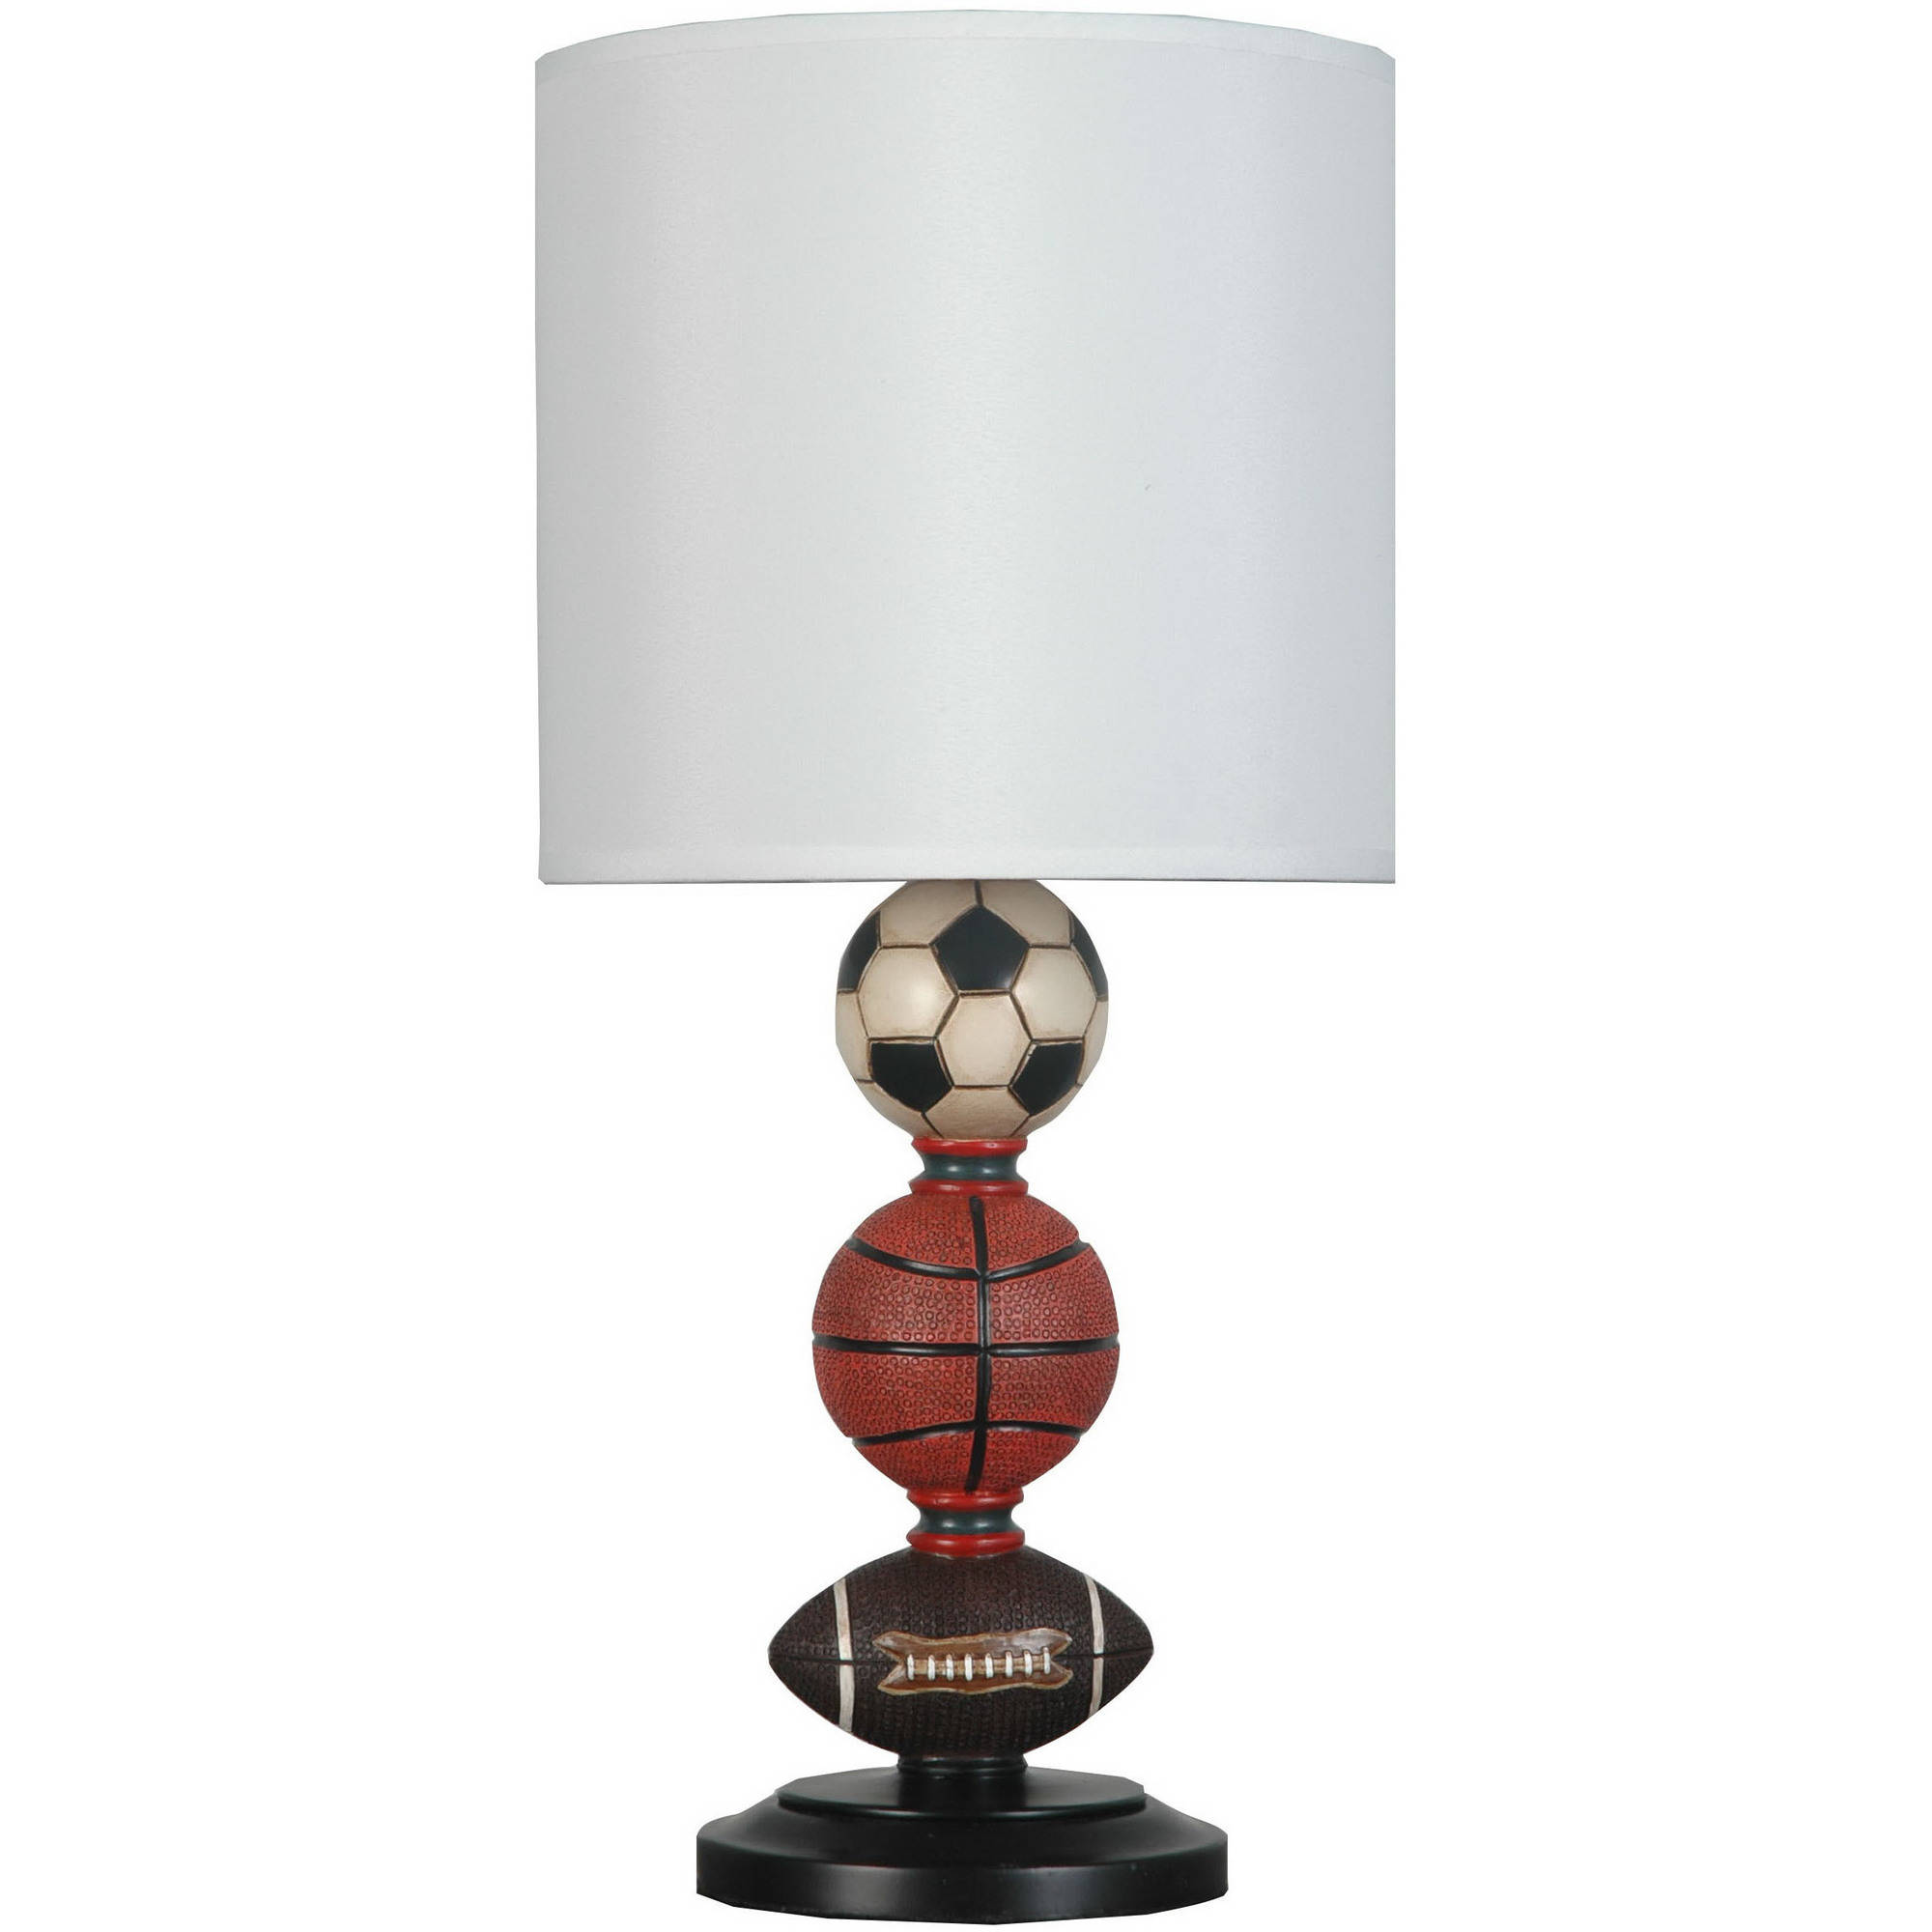 Delicieux Your Zone Multi Sports Table Lamp With Shade